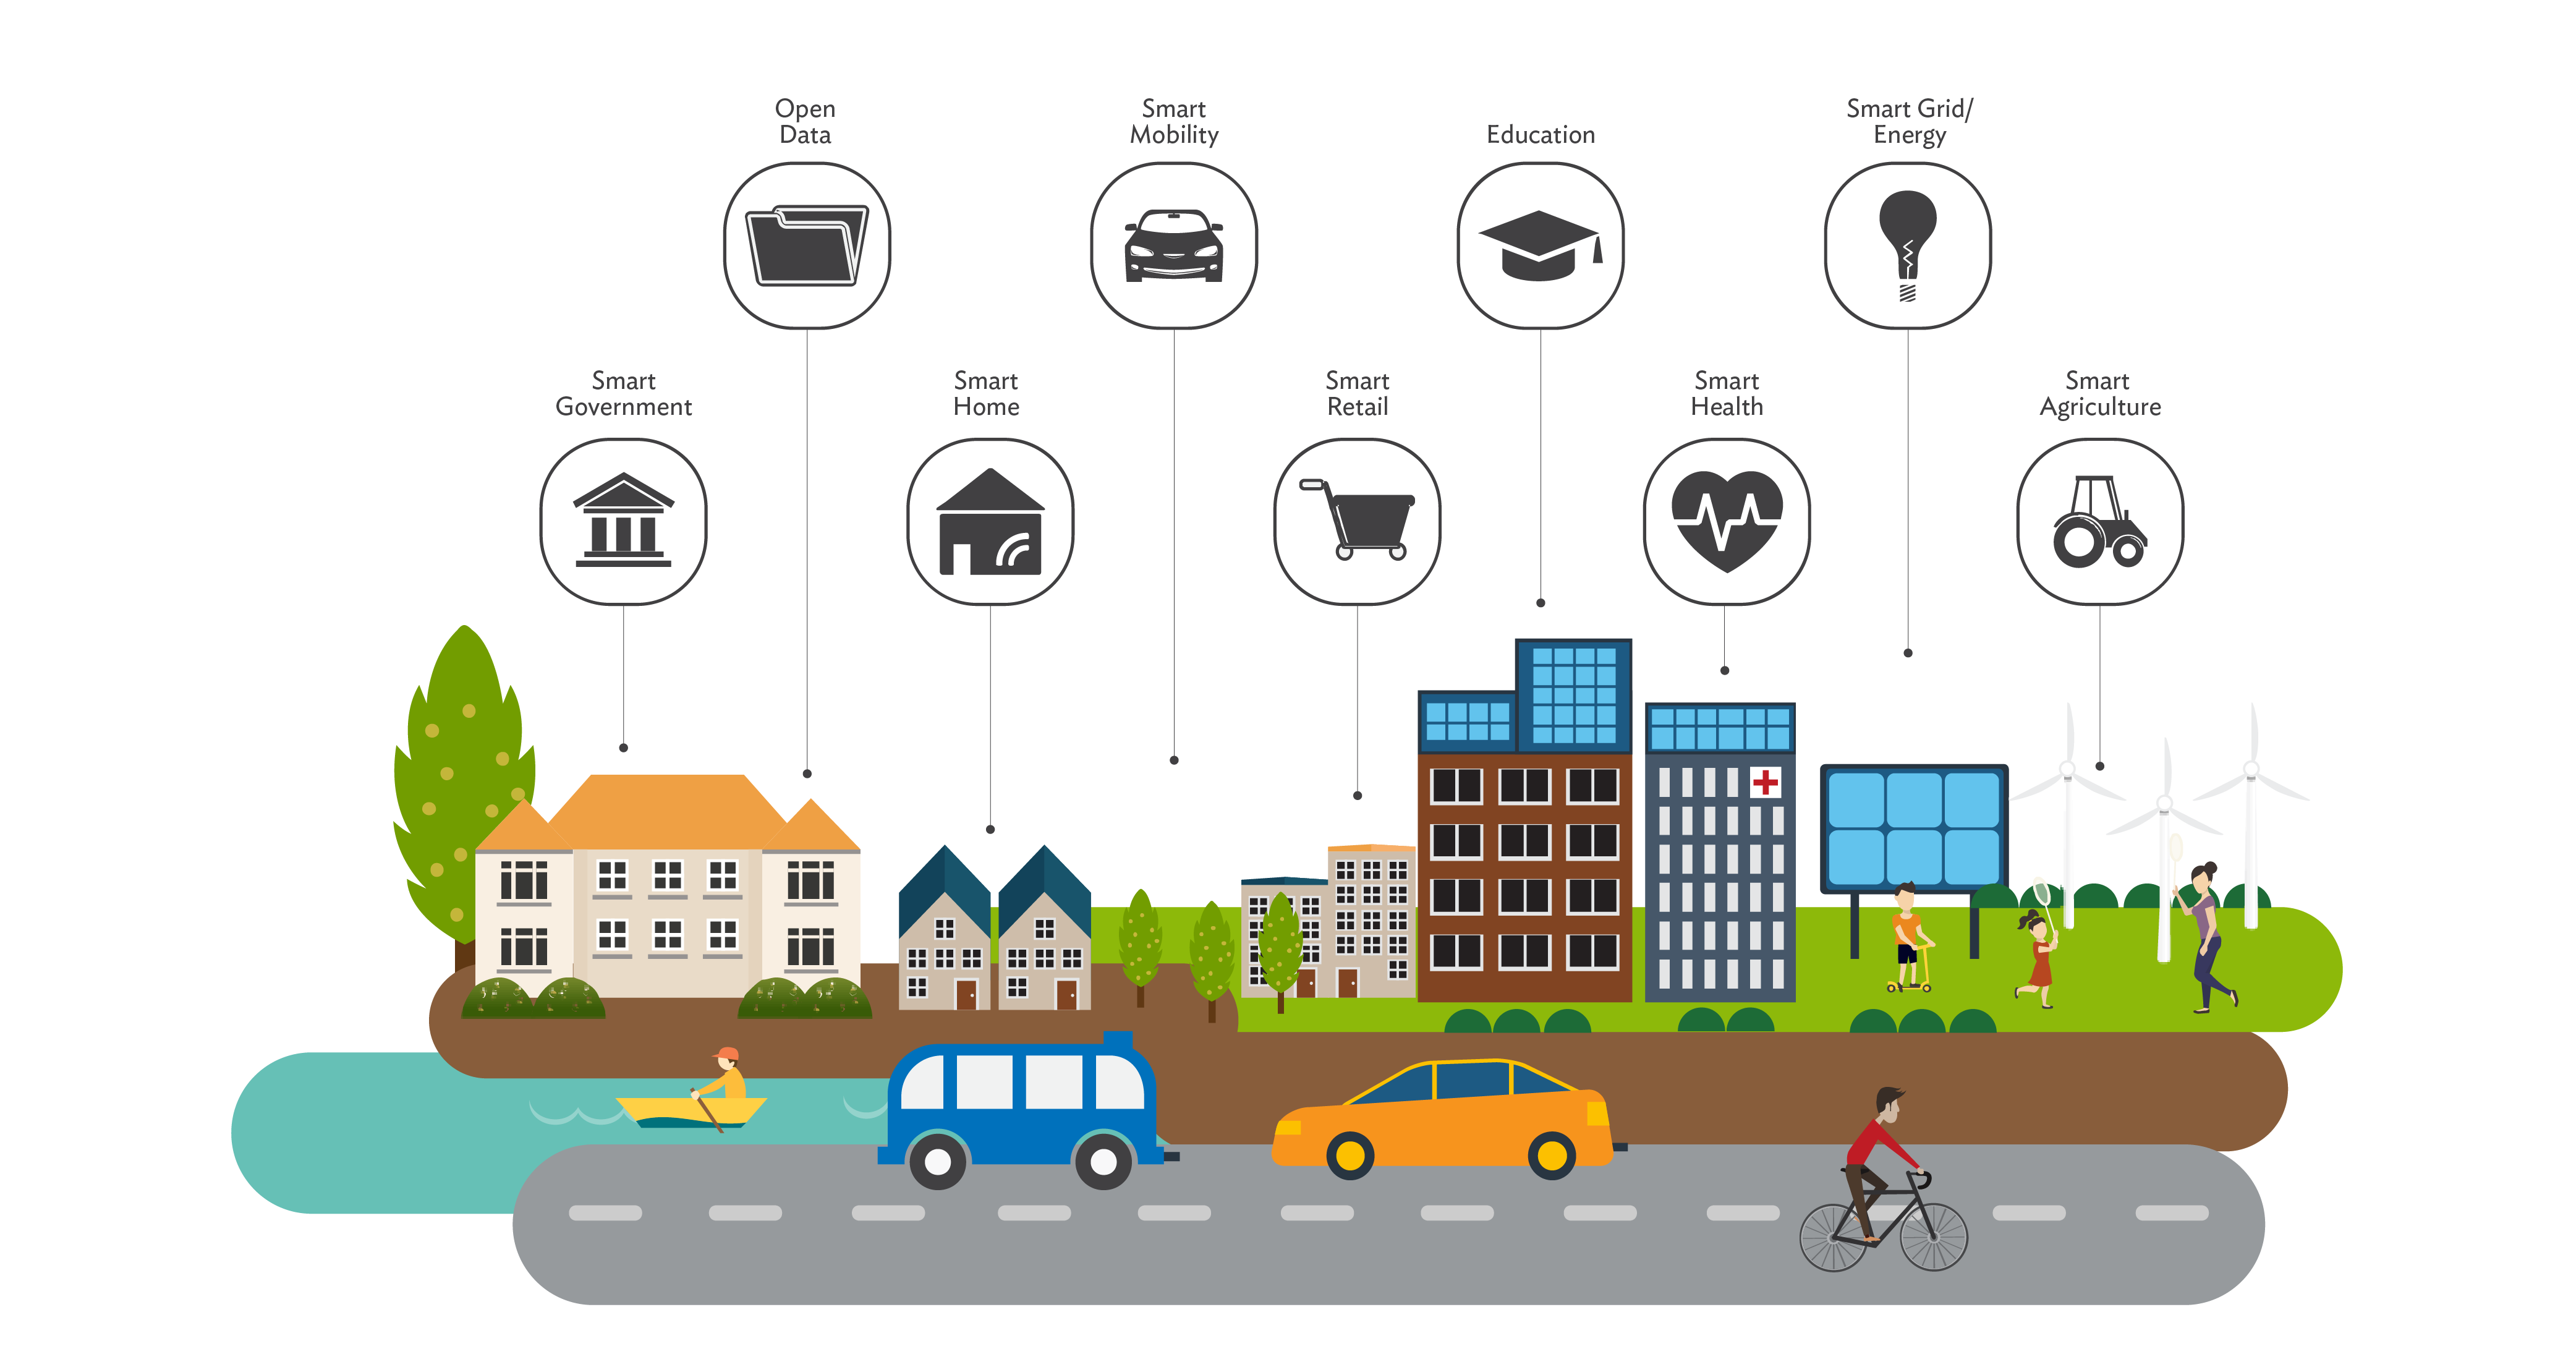 Capitalizing on Internet of Things can lead to smart, competitive, and livable cities